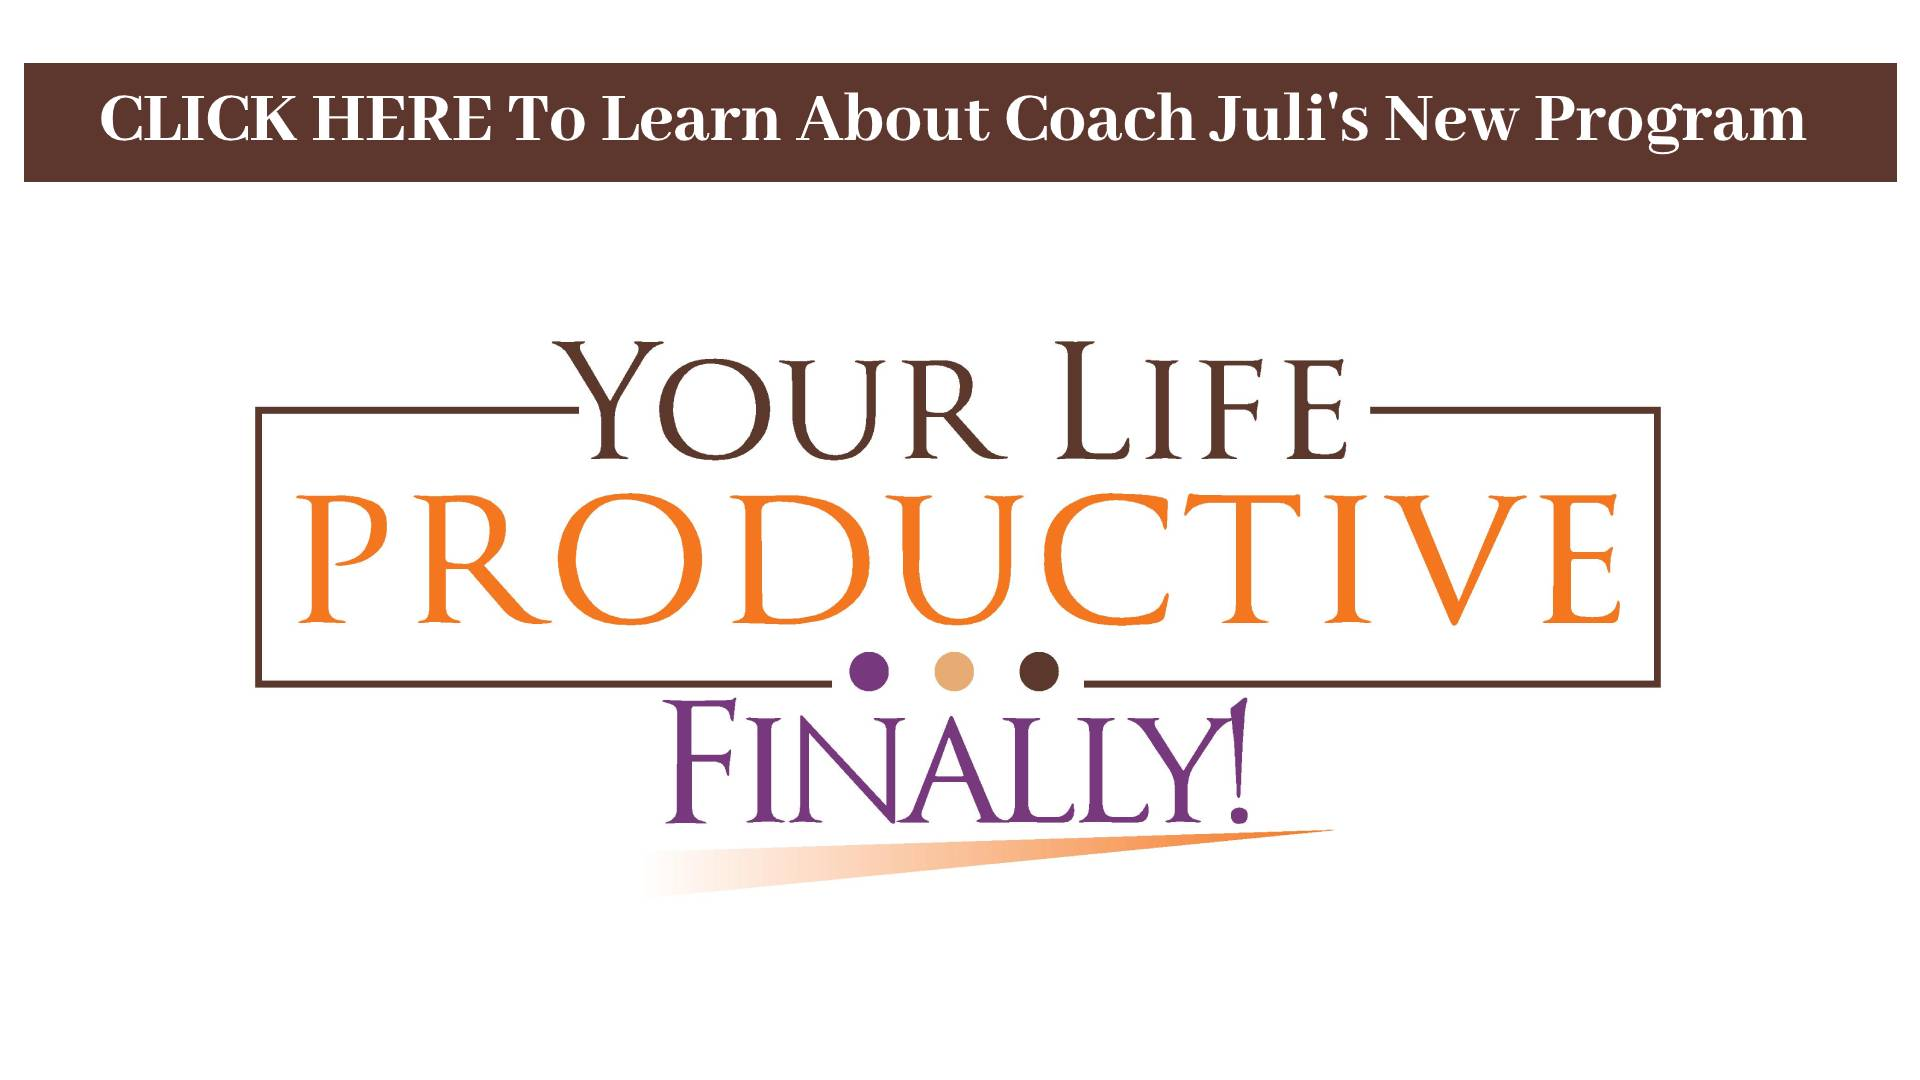 Your Life Productive Finally! Coach Juli